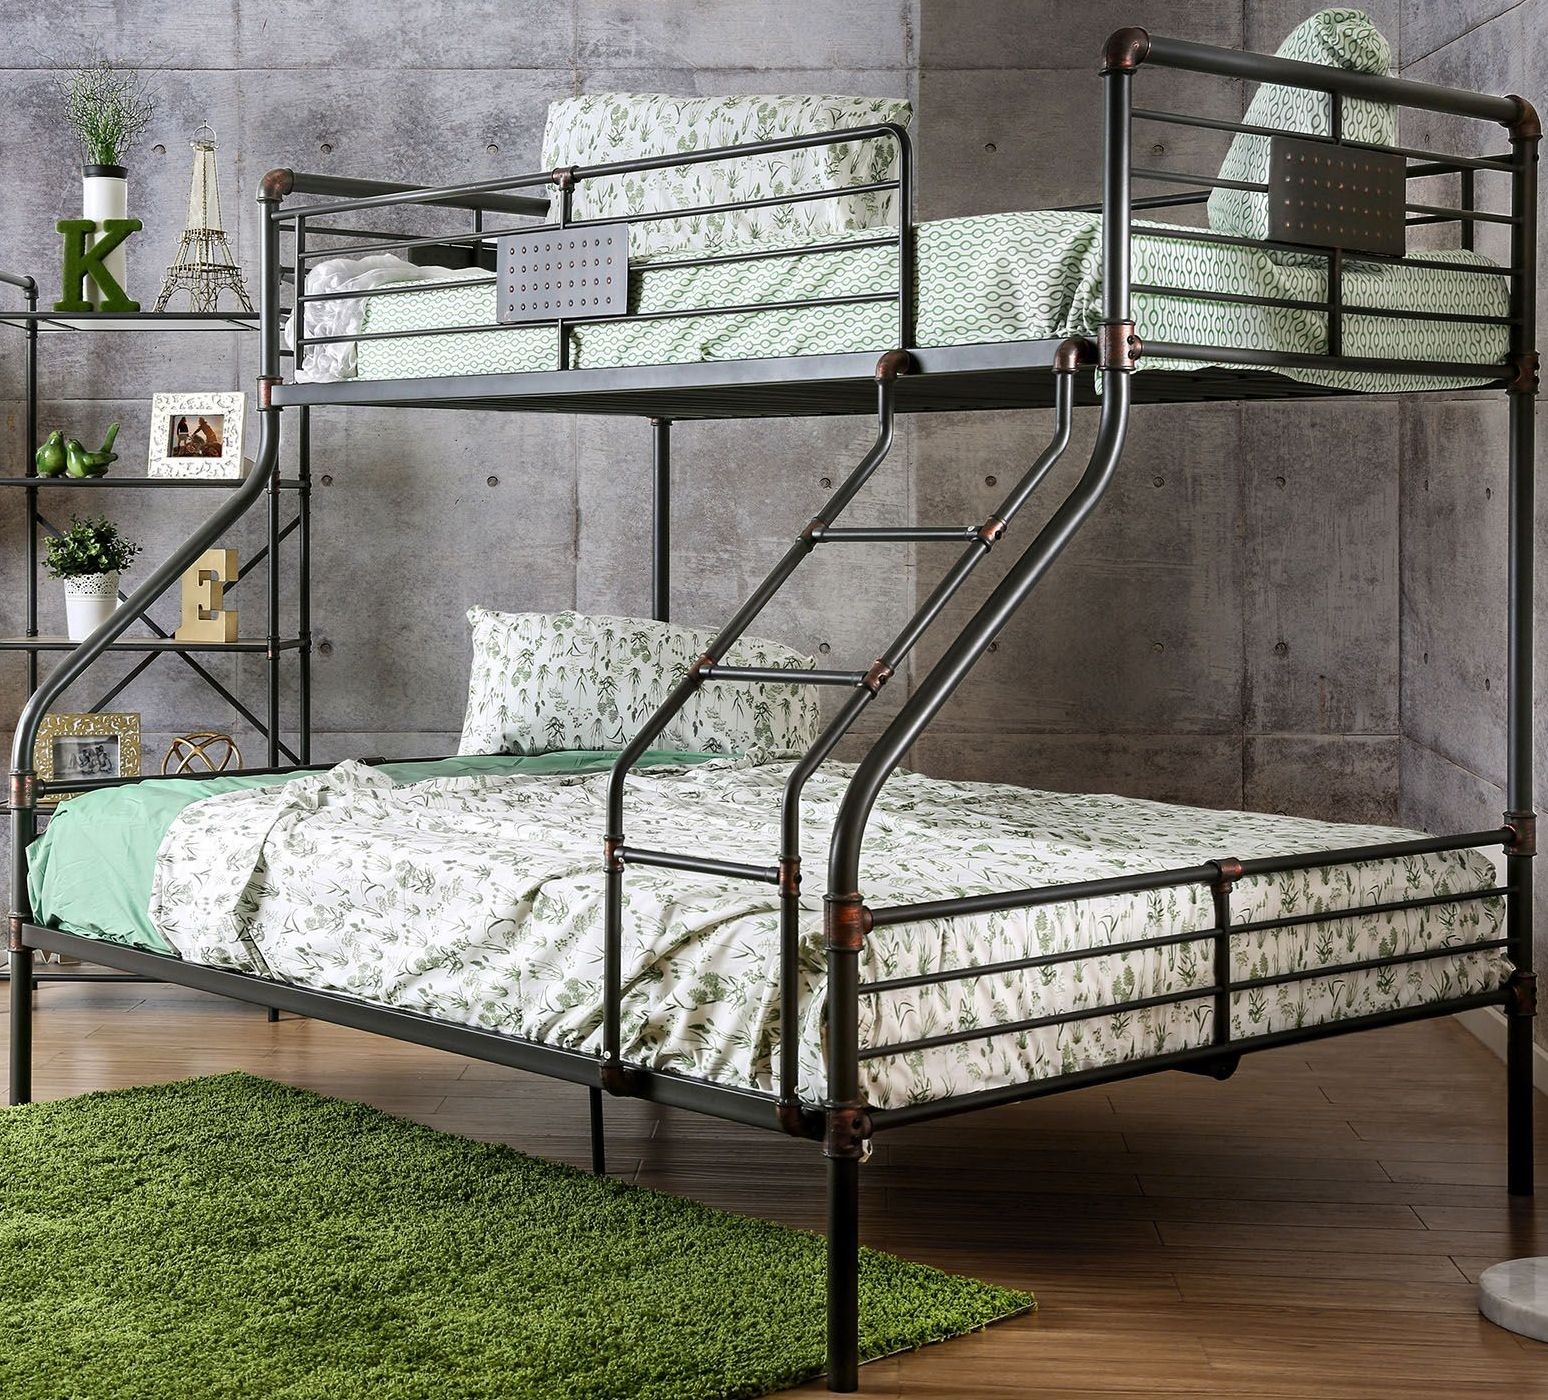 Olga I Antique Black Twin Over Queen Bunk Bed Cm Bk913tq: 2 twin beds make a queen